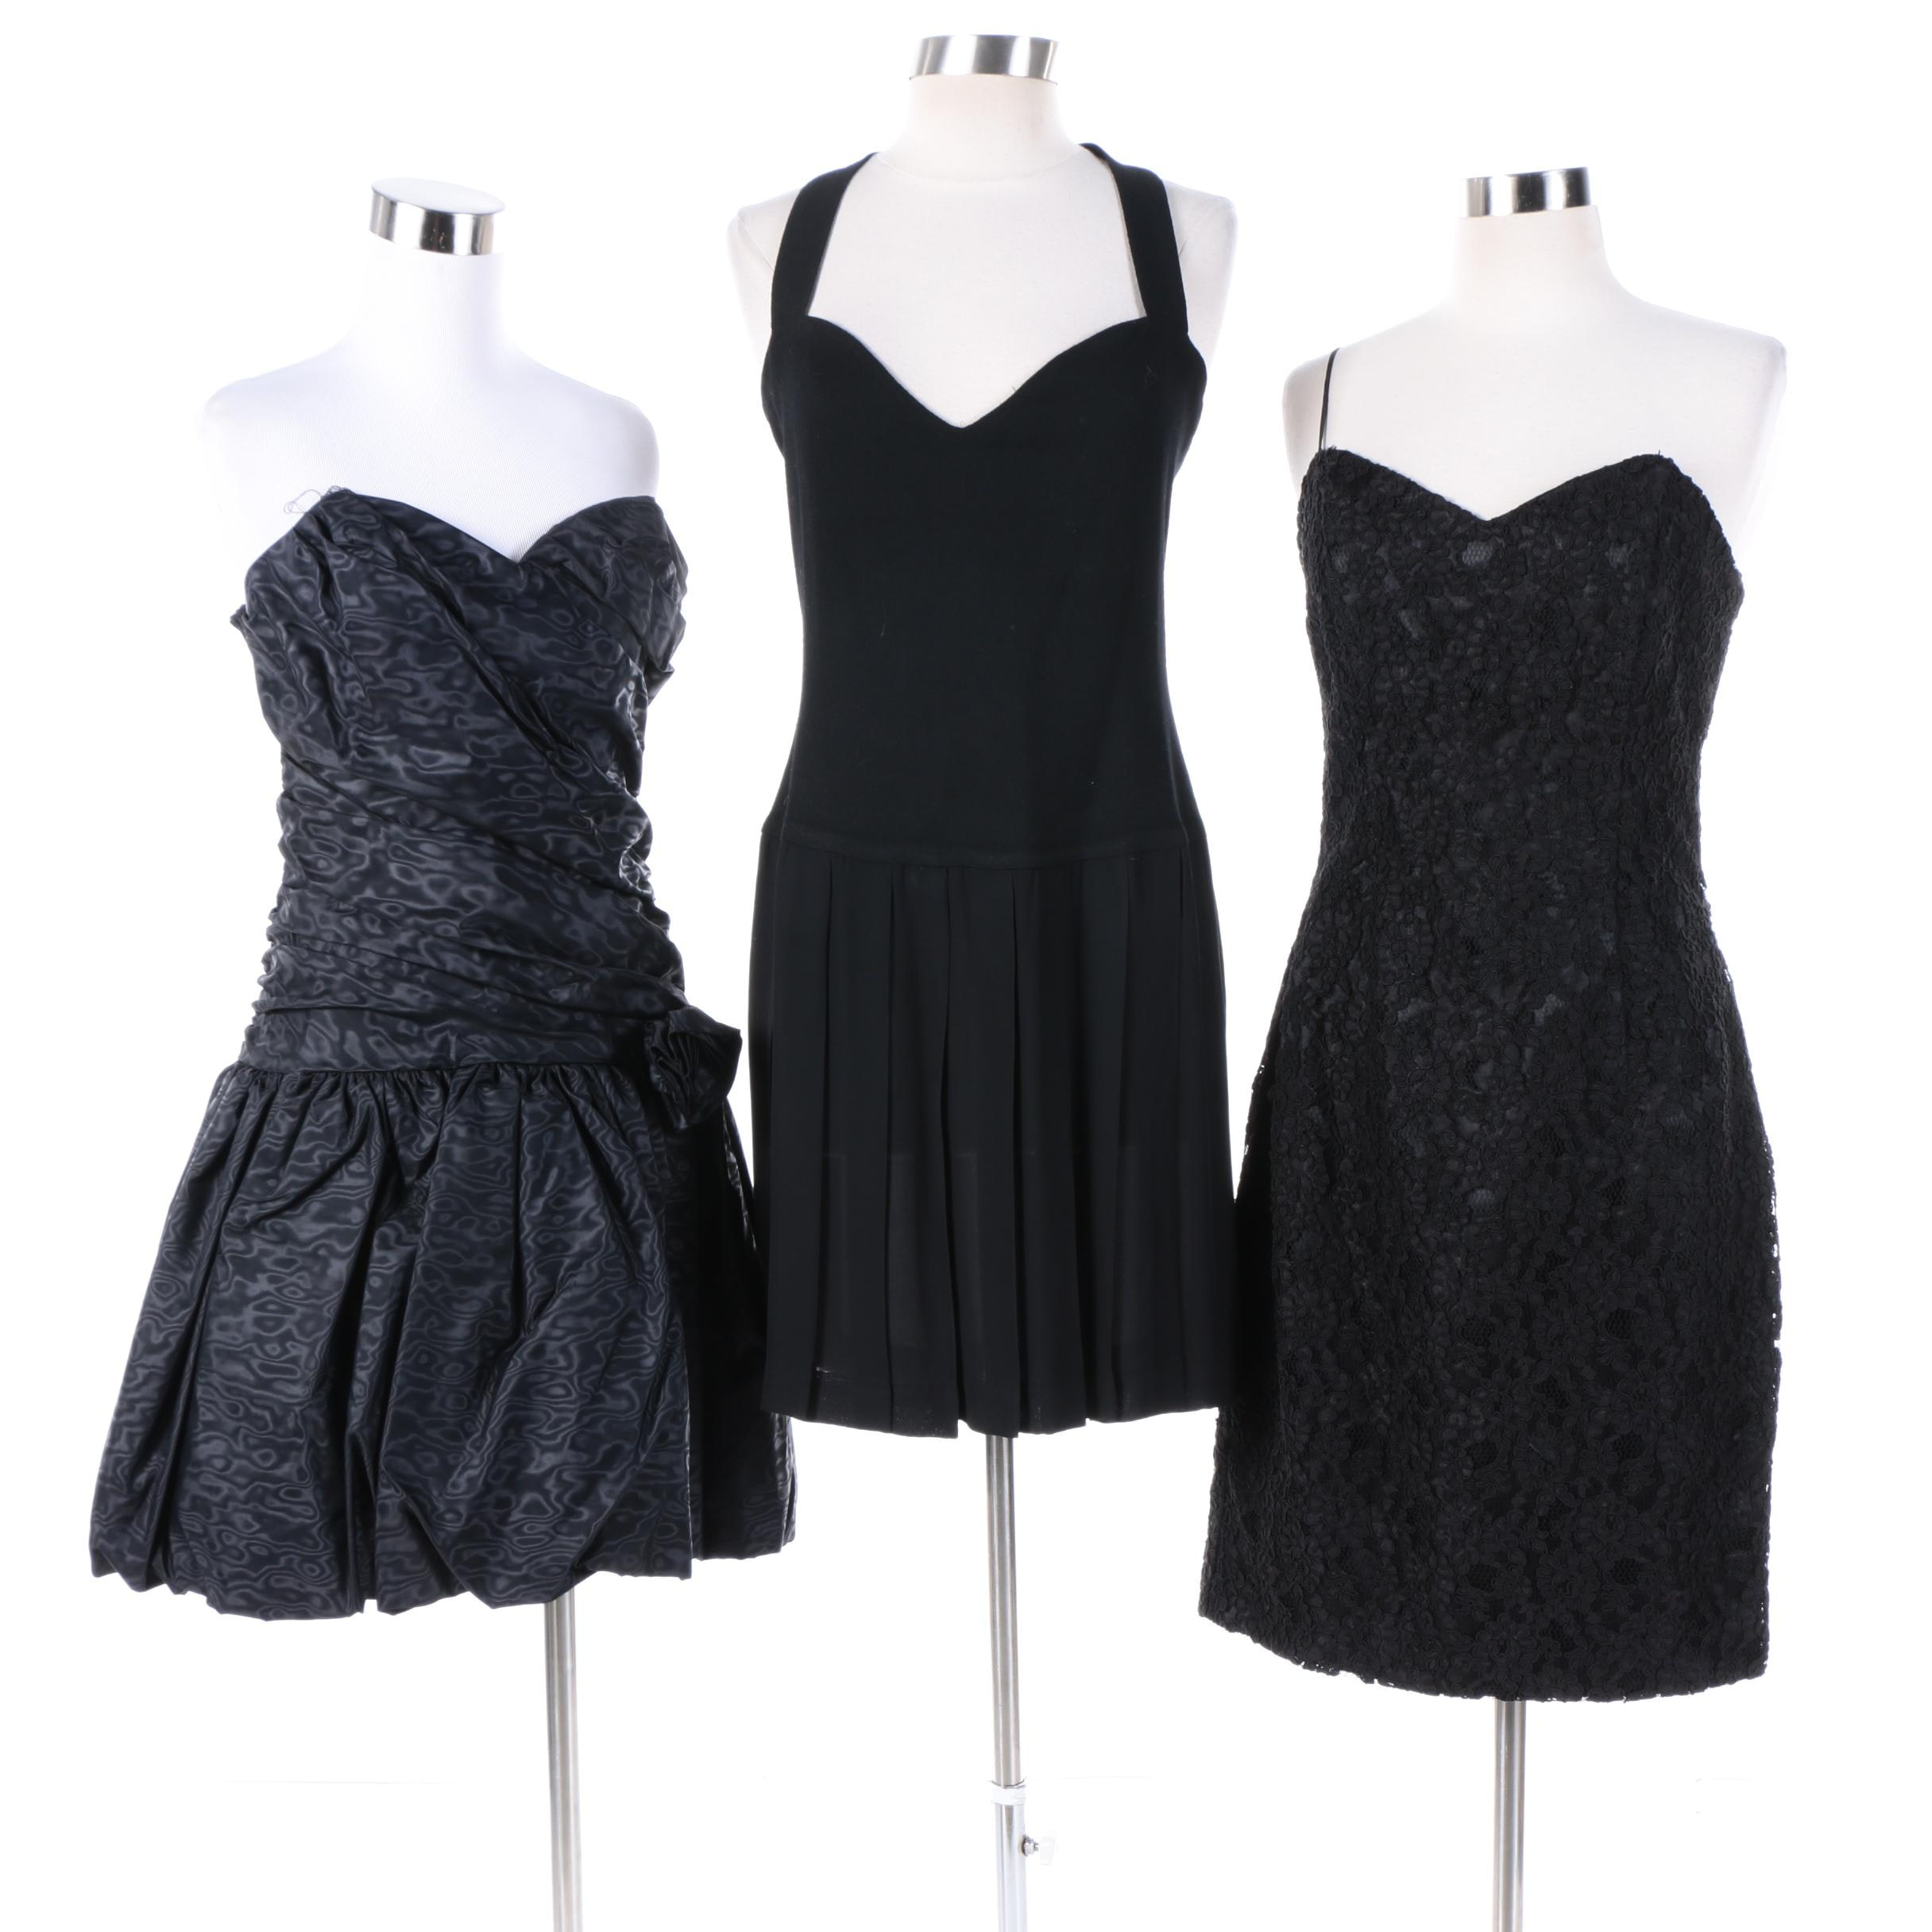 1980s Vintage Black Party Dresses Including Donna Karan, Jessica McClintock